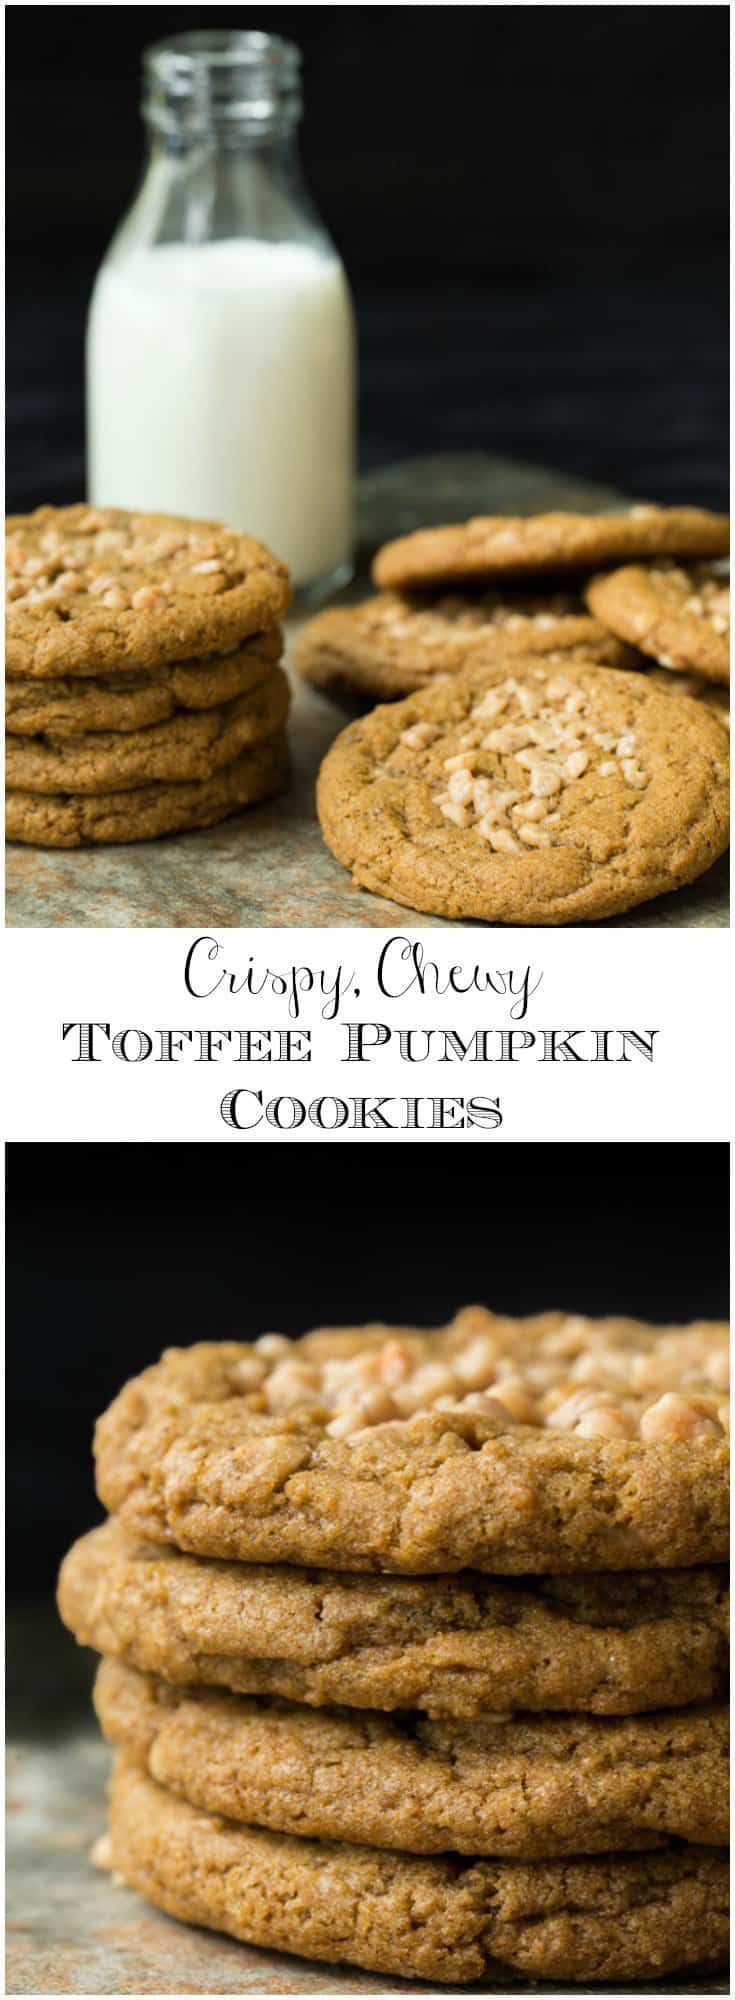 These unbelievably delicious Pumpkin Cookies are crispy and chewy at the same time and studded crunchy toffee bits. A cookie lover's dream come true! via @cafesucrefarine